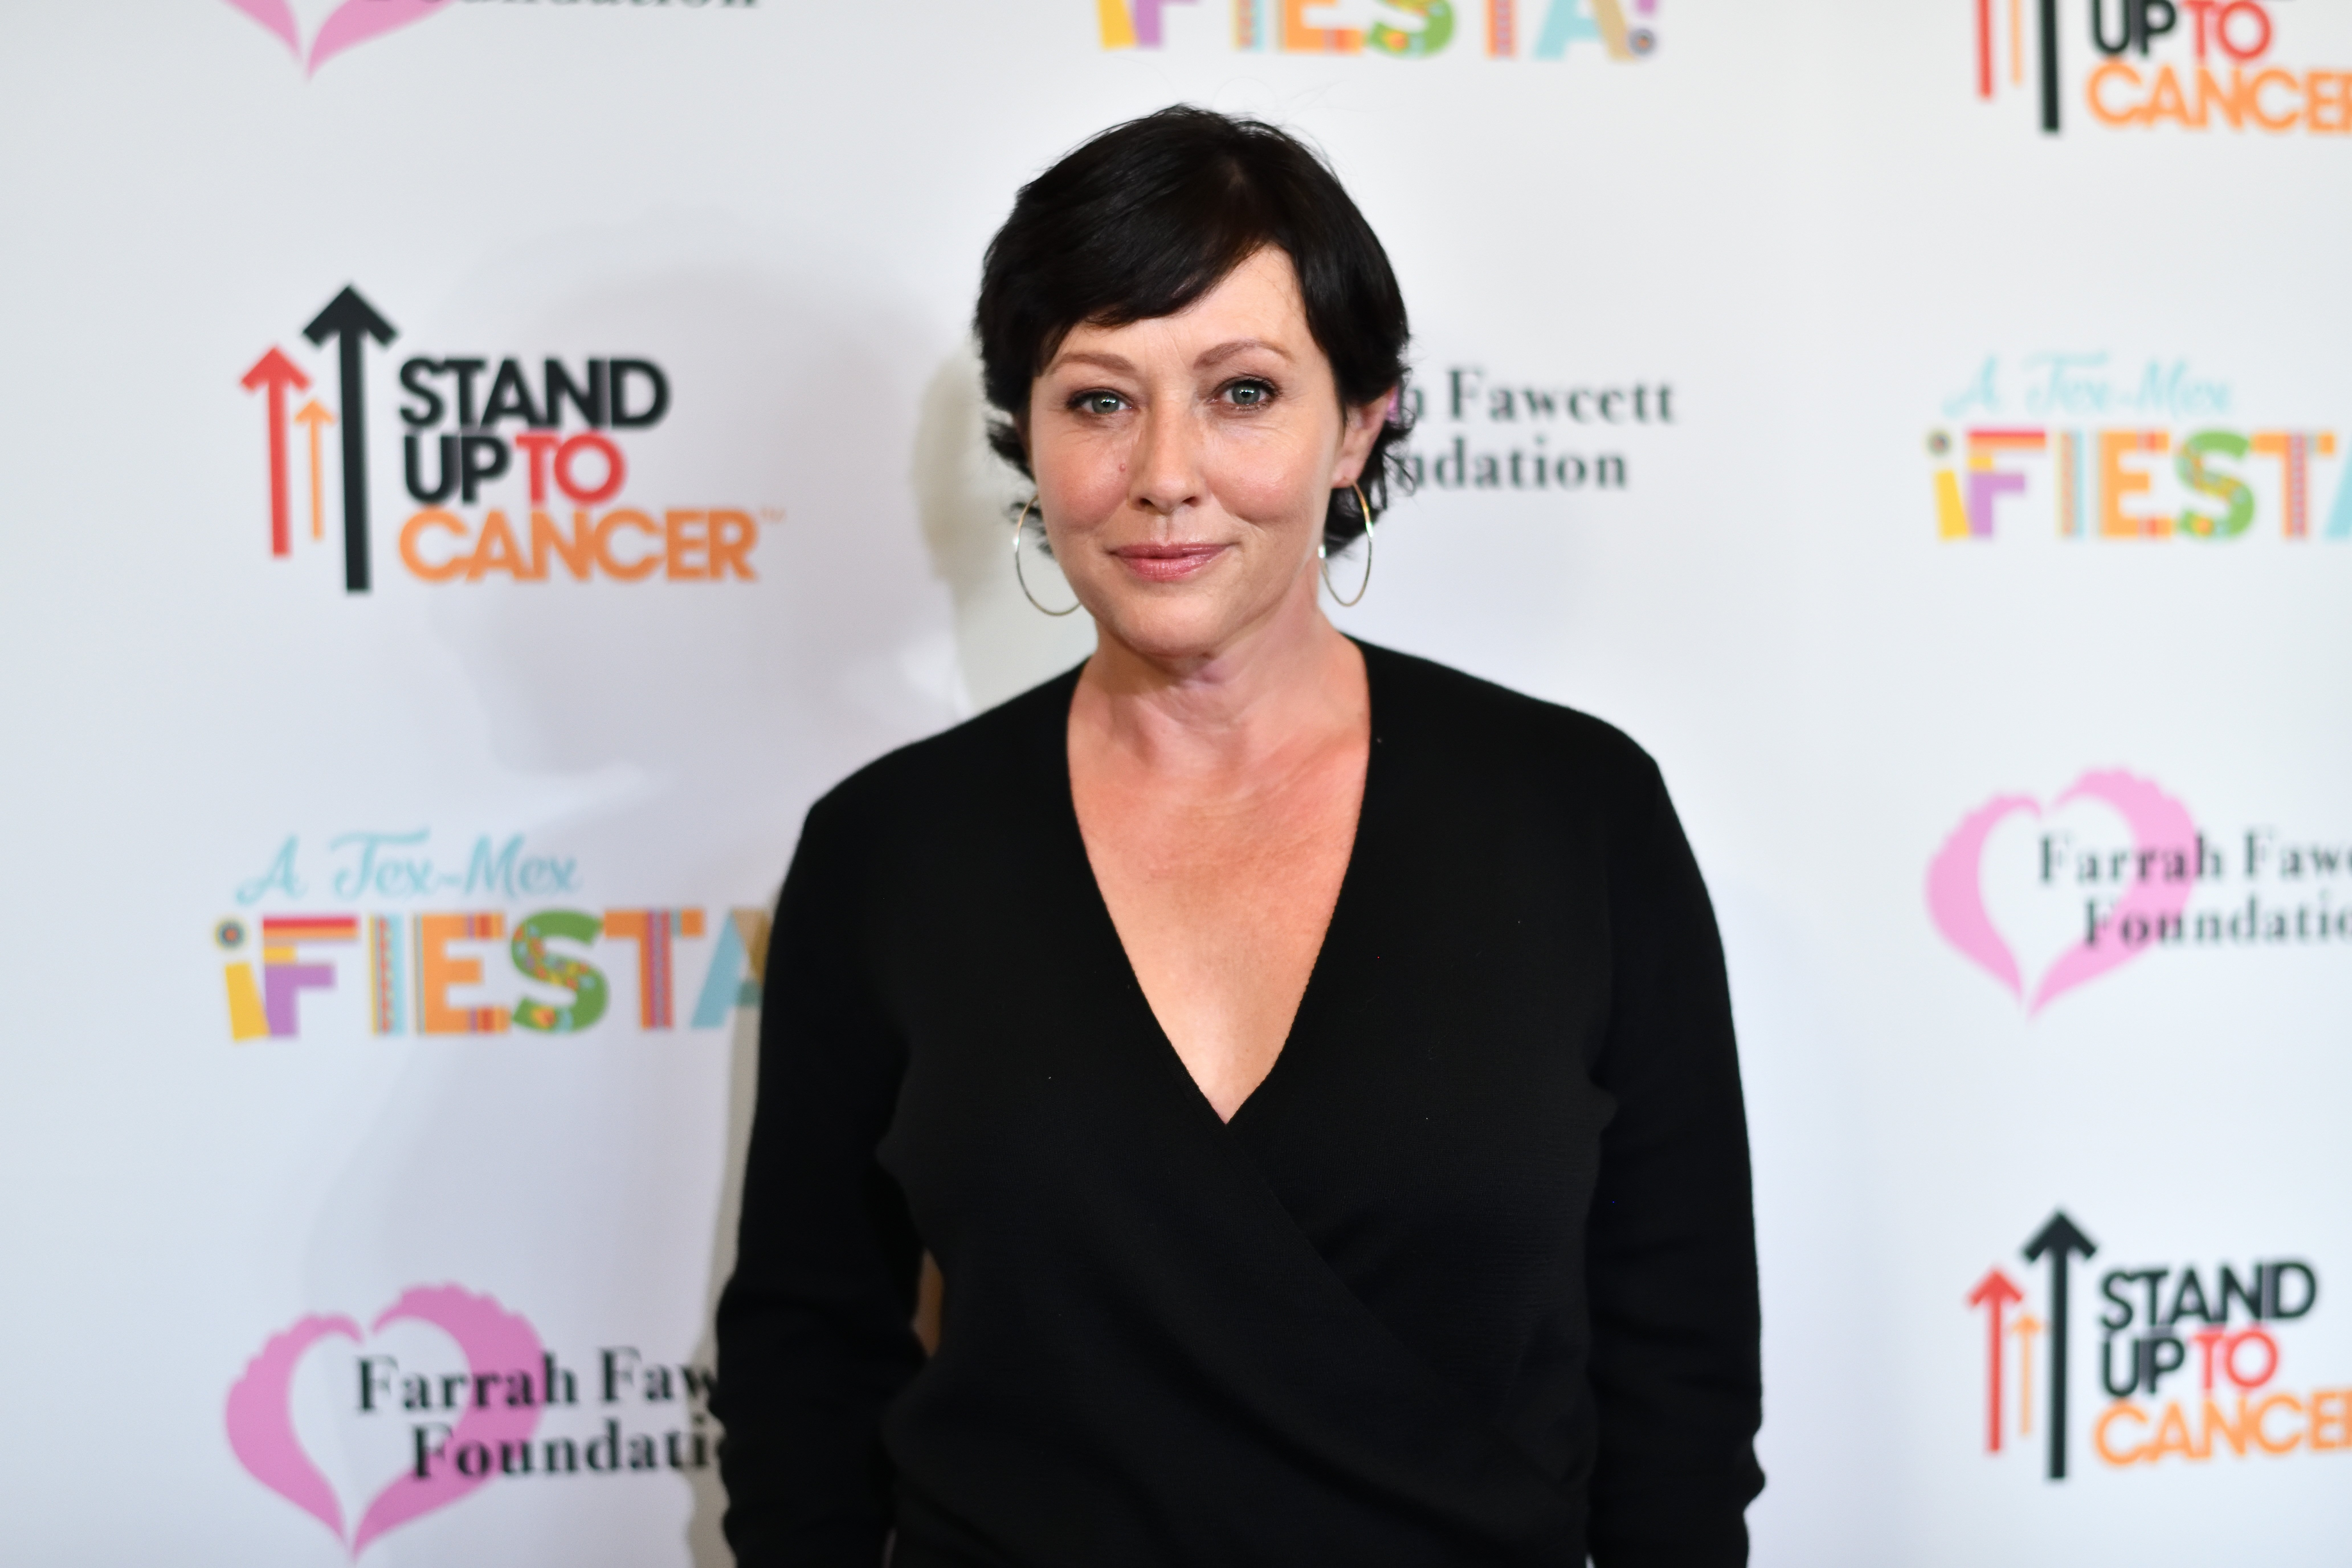 """Shannen Doherty attends the Farrah Fawcett Foundation's """"Tex-Mex Fiesta"""" Honoring Stand Up To Cancer at Wallis Annenberg Center for the Performing Arts on September 9, 2017 